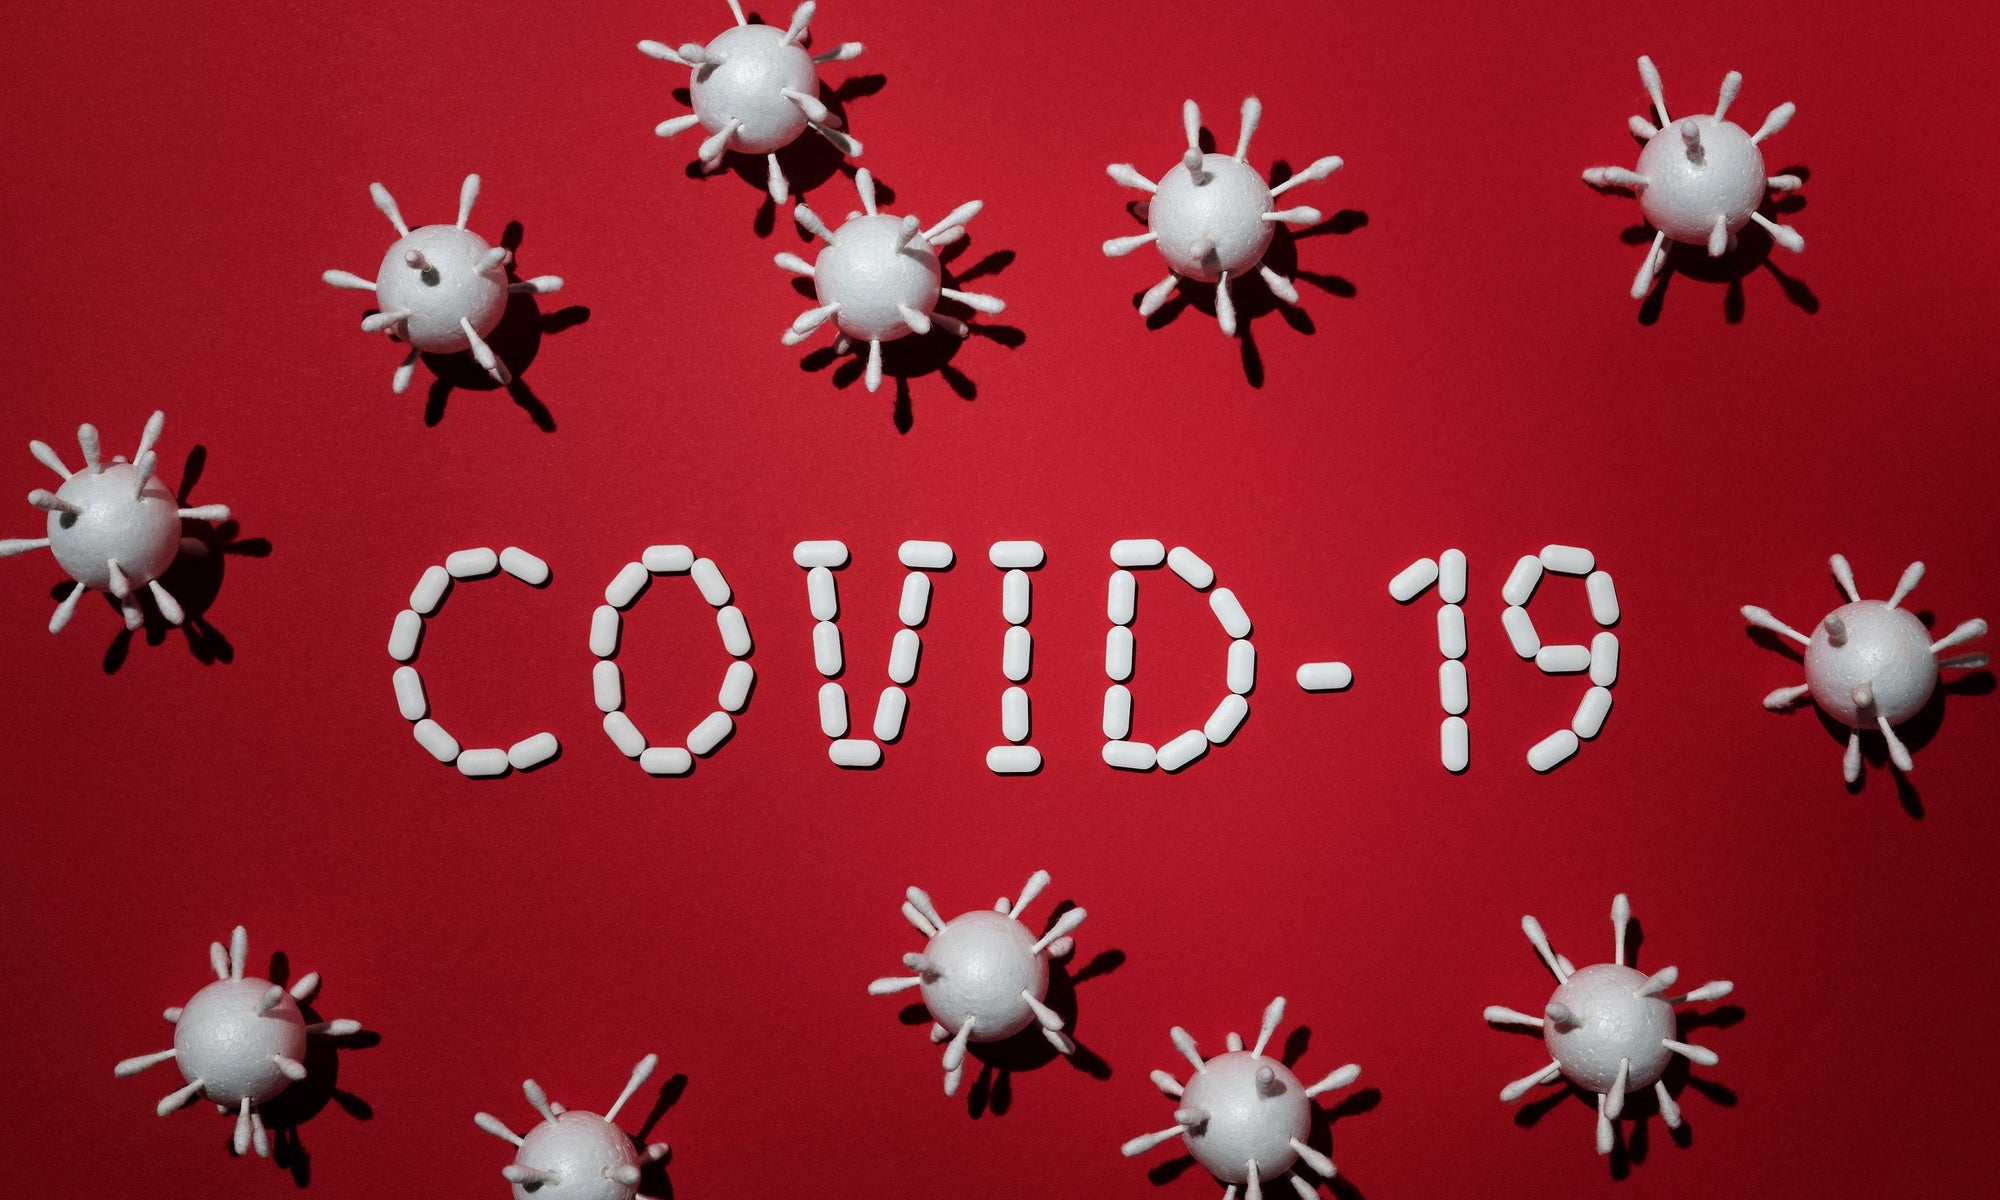 The spread of COVID - 19: How It Will Affect Our Daily Lives